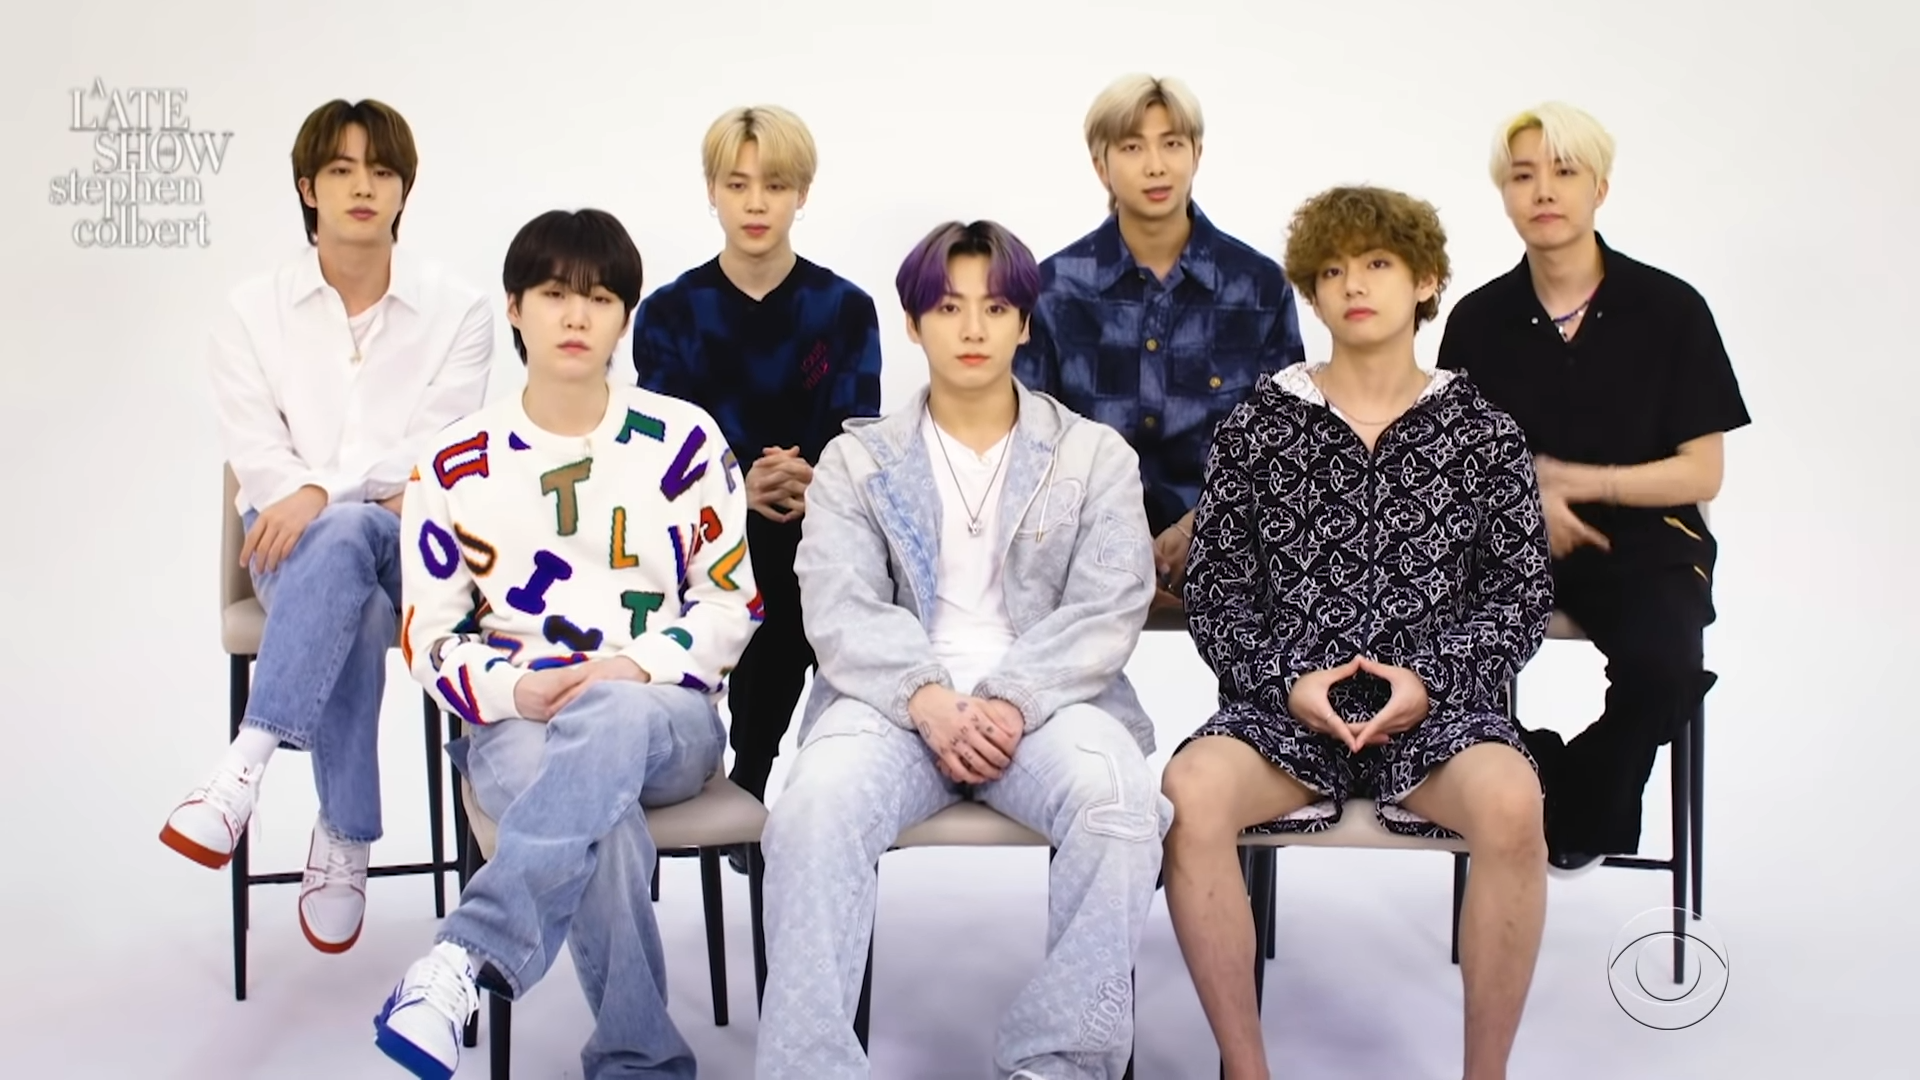 BTS Is Ready To Break The Internet With These New Hand Gestures 0-57 screenshot